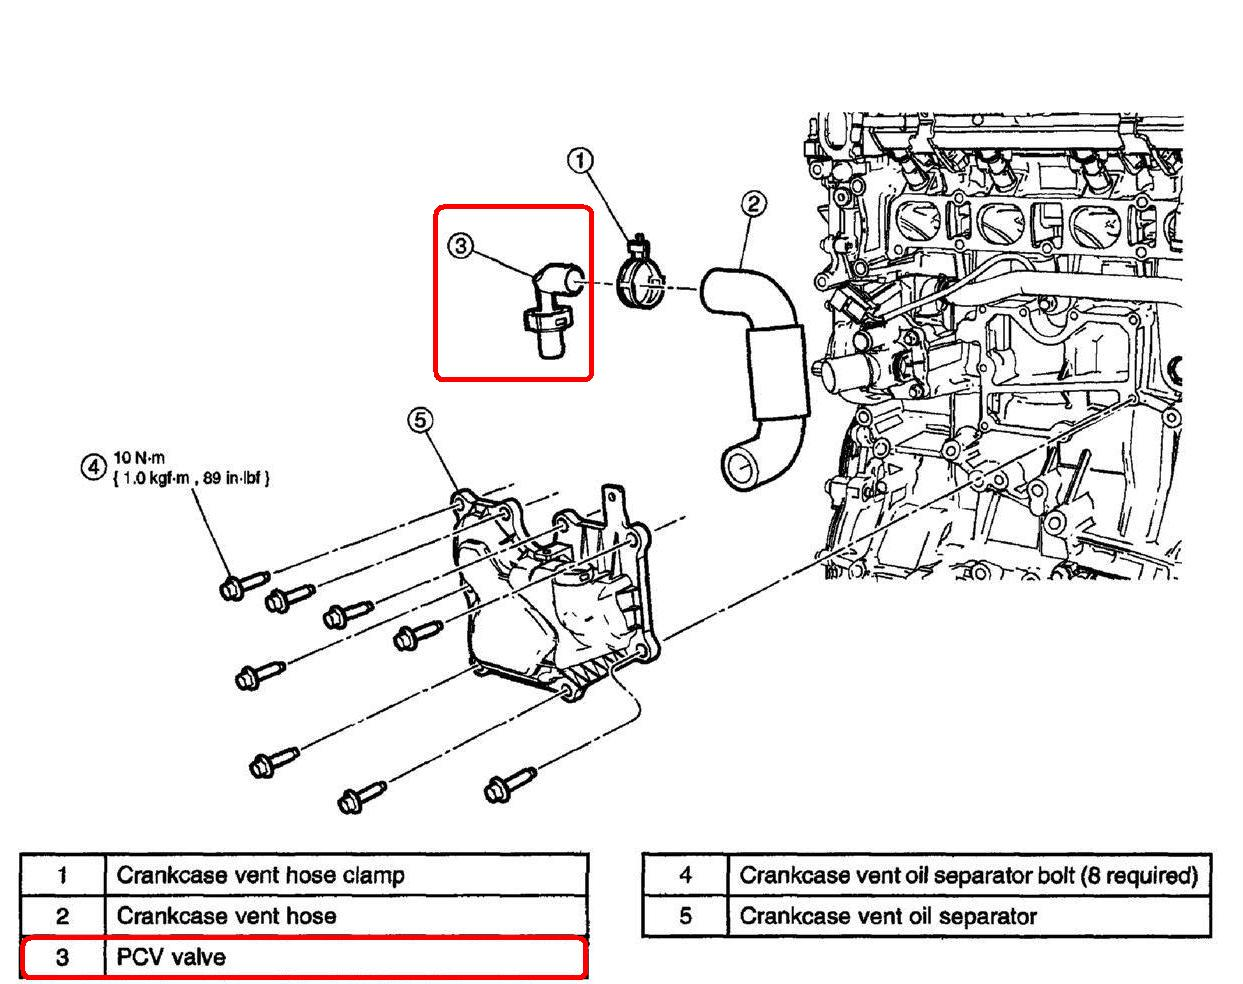 2004 mazda 3 car stereo wiring diagram with 2001 Mazda Mpv Engine Diagram on Gm Onstar Mirror Wiring Diagram in addition 416877 03 G35 Where Does Tweeter Meet Woofer Wiring further 96specs furthermore Tail Light Wig Wag besides Mazda Engine Diagram.